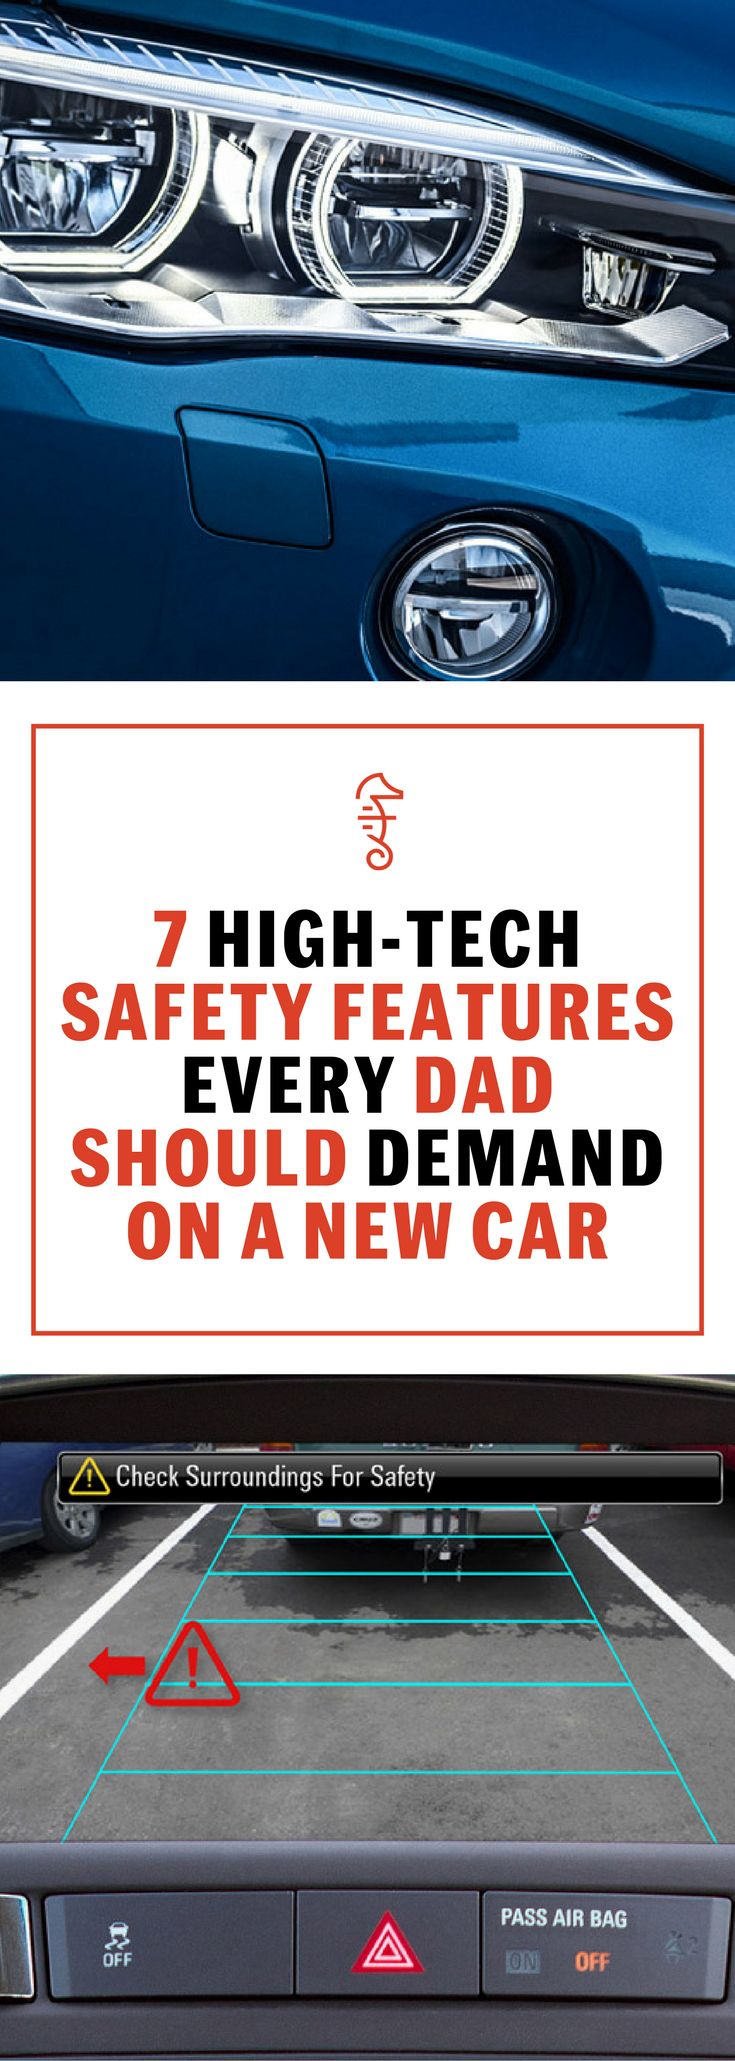 Car safety features, car safety features family, family car safety, car features